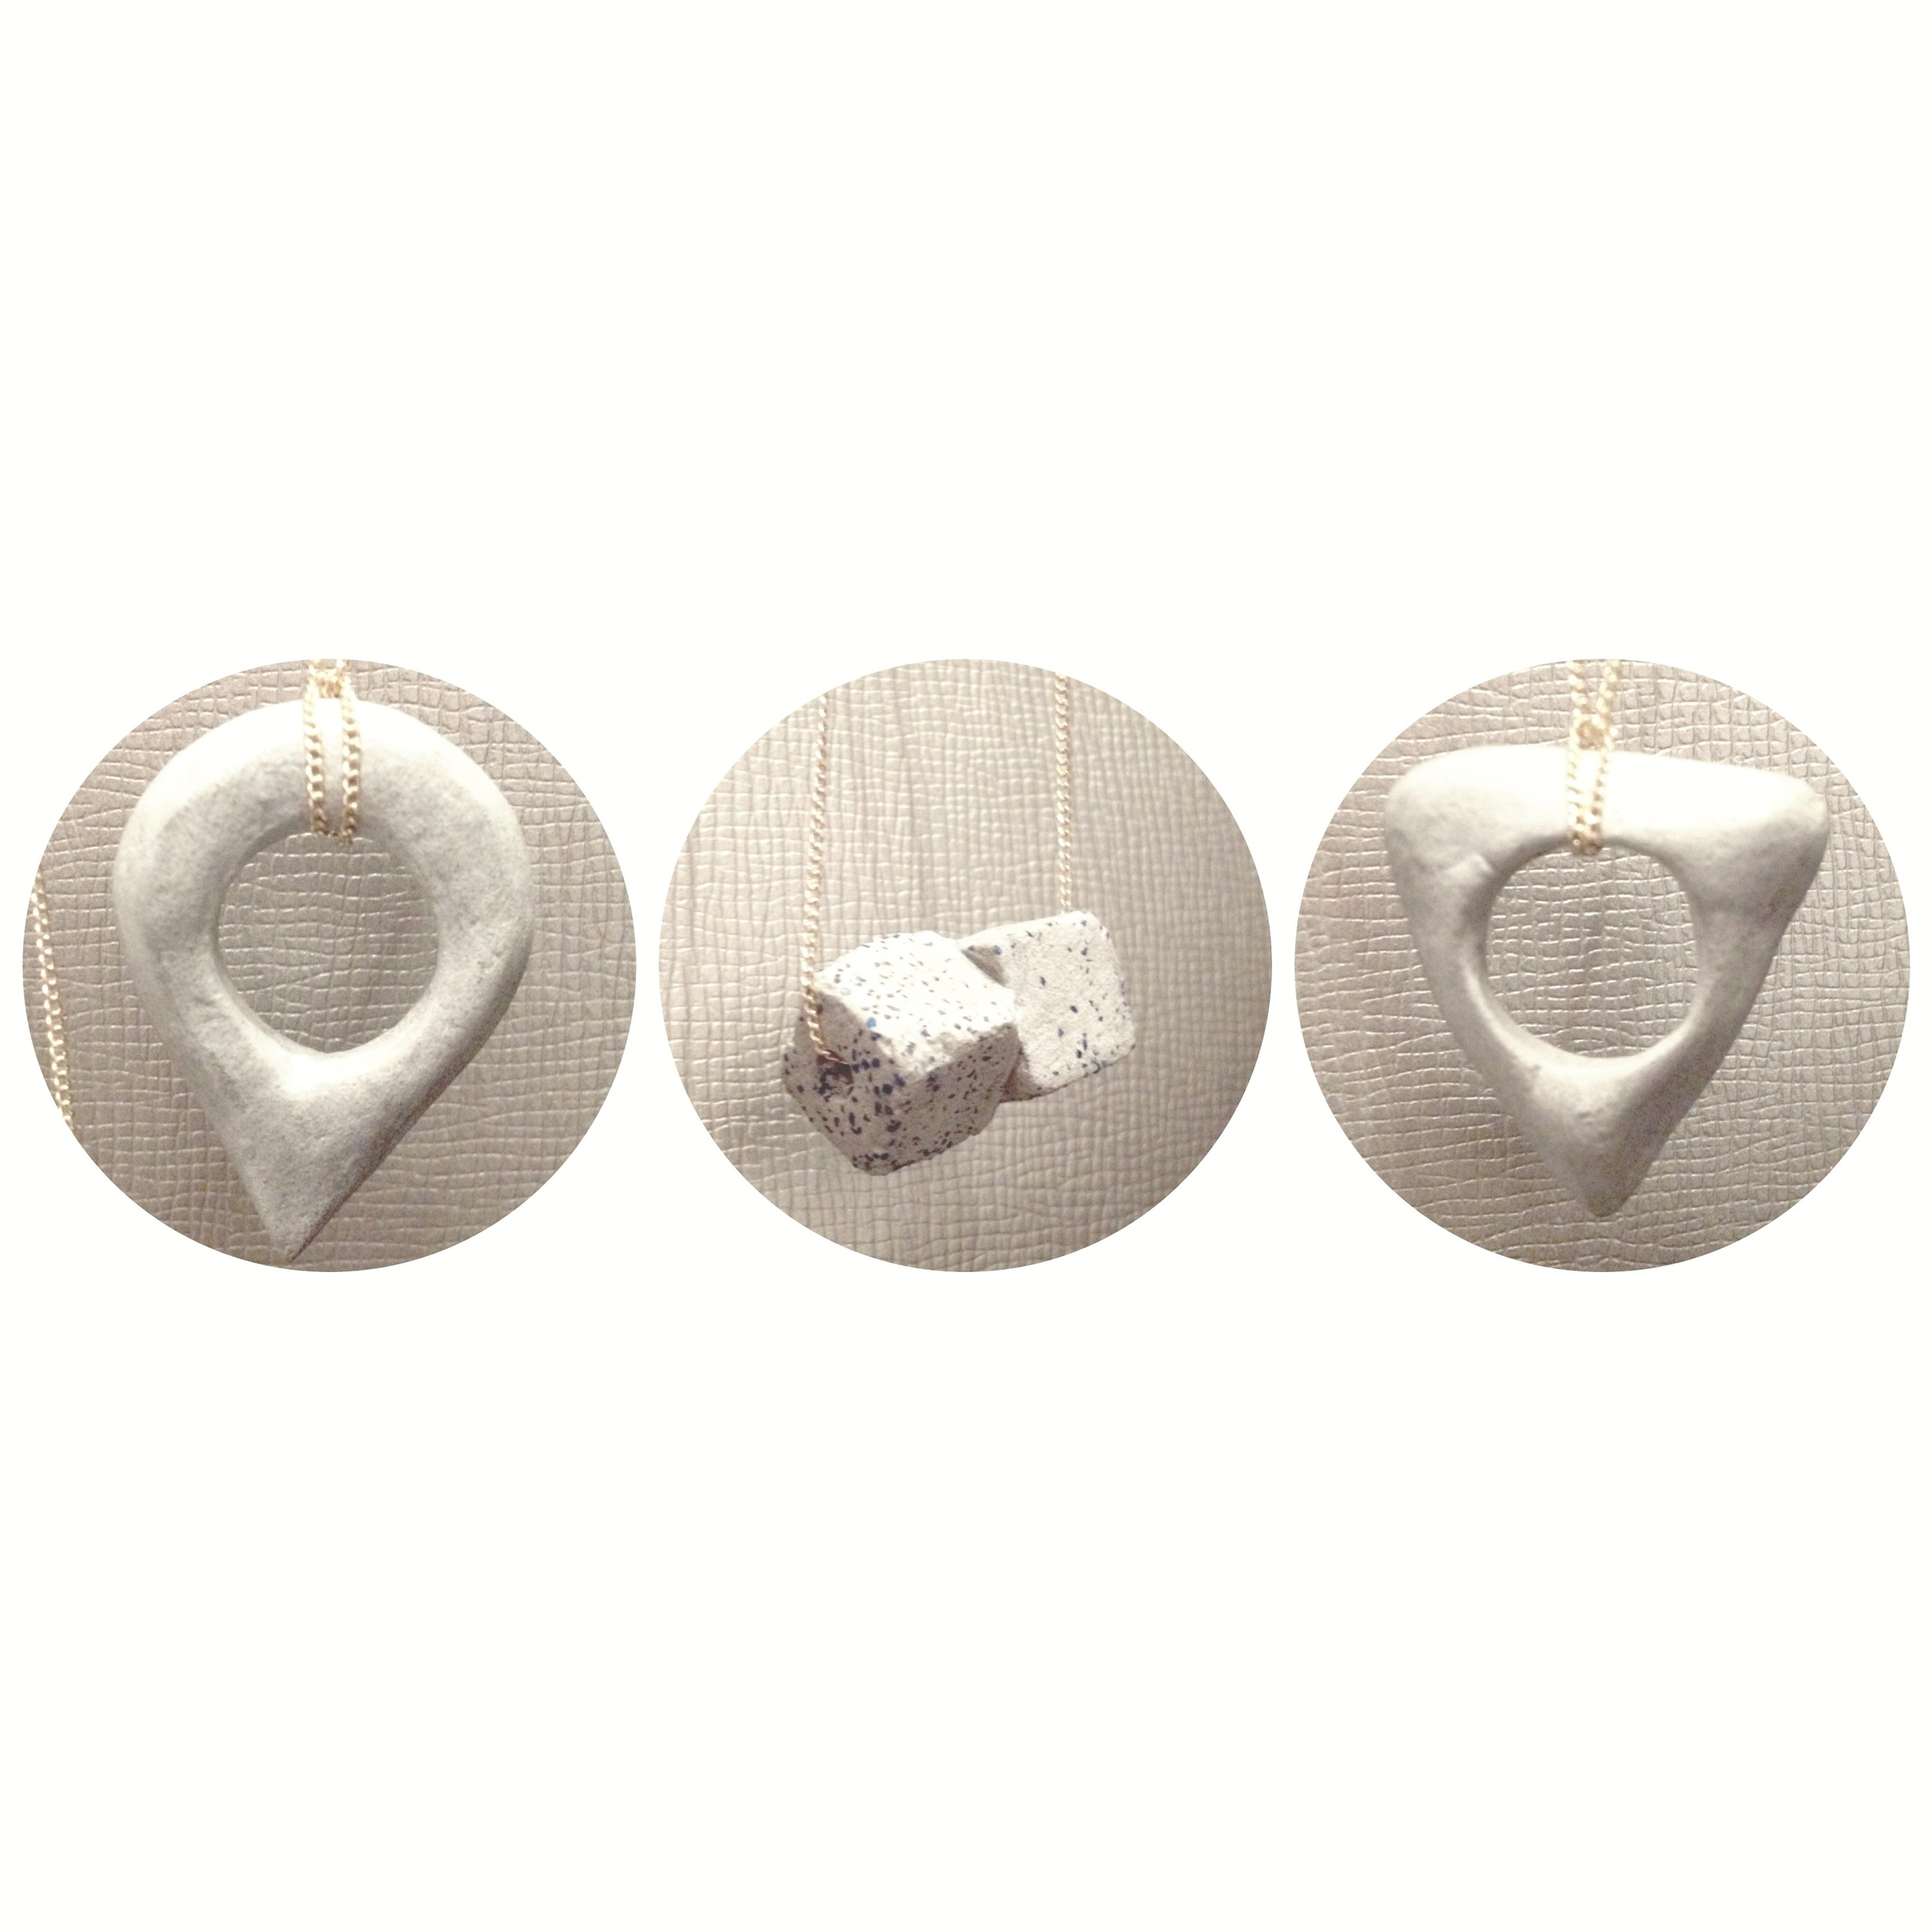 Our newest concrete pendants.From left:  You Are Here ,  Cubic Kiss , &  Ouija  necklaces.